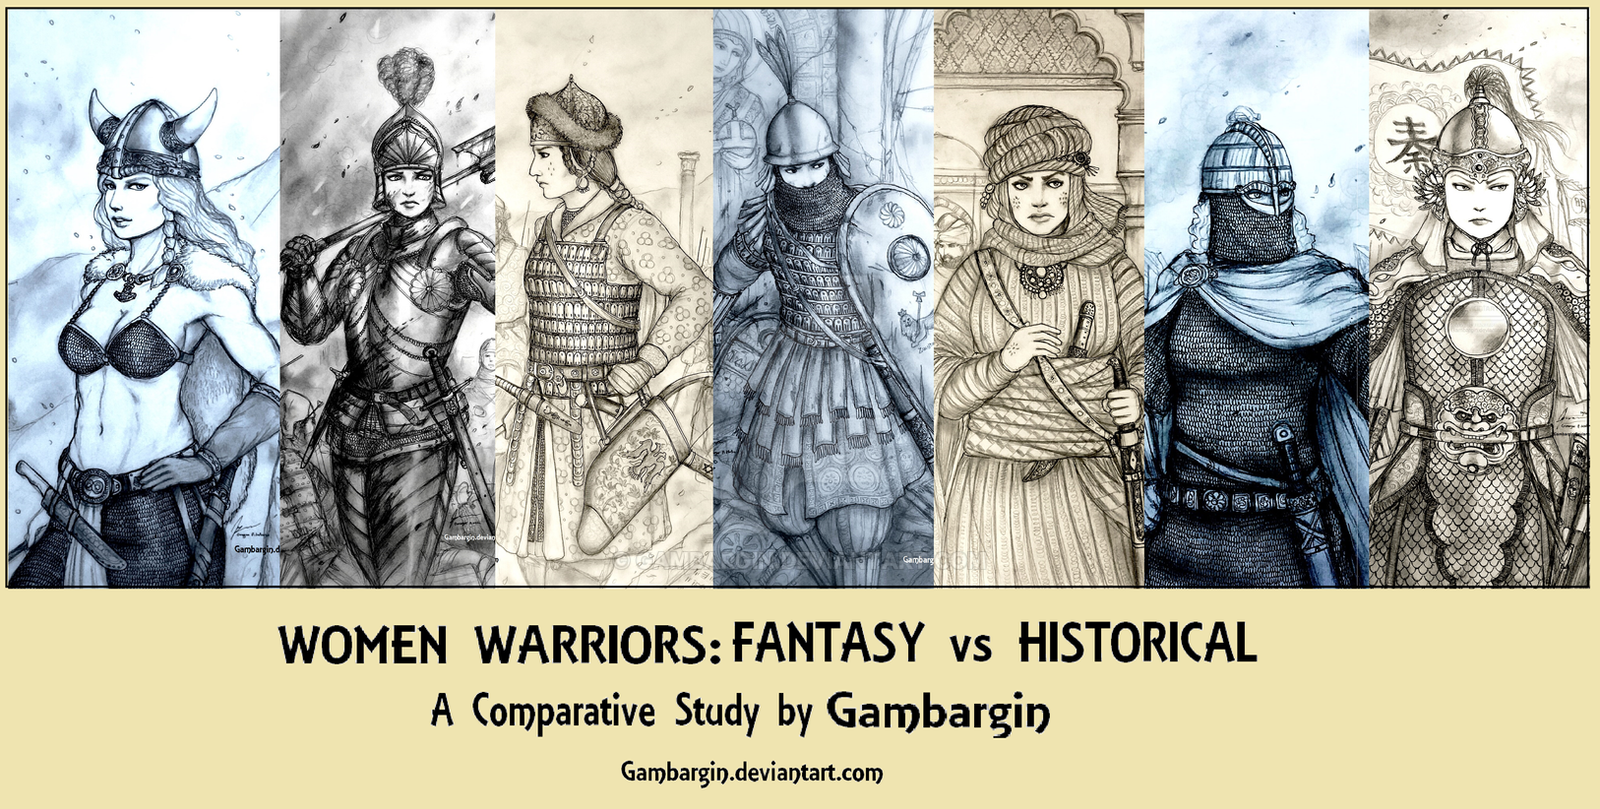 essay women warriors fantasy vs historical by gambargin